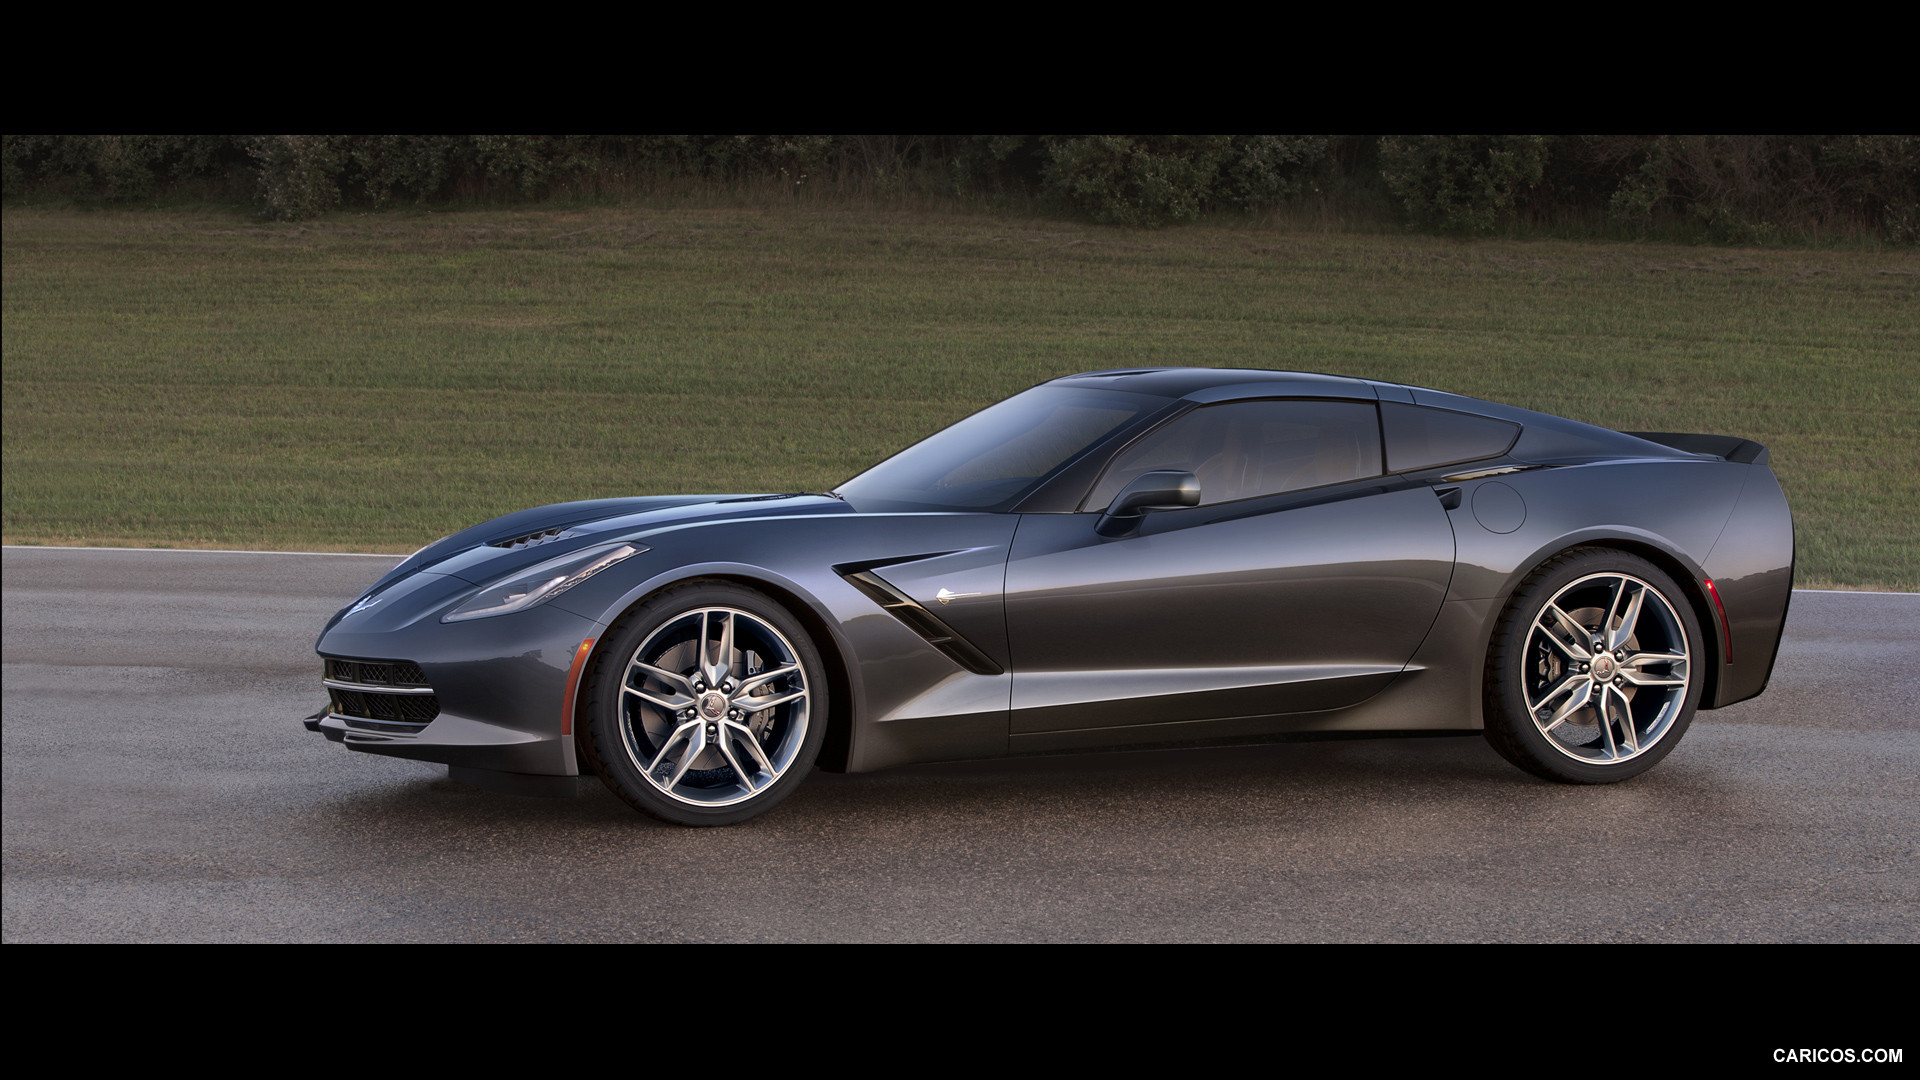 2014 corvette stingray black 2014 Chevrolet Corvette Stingray Black HD Wallpapers - WALLS-WORLD.COM